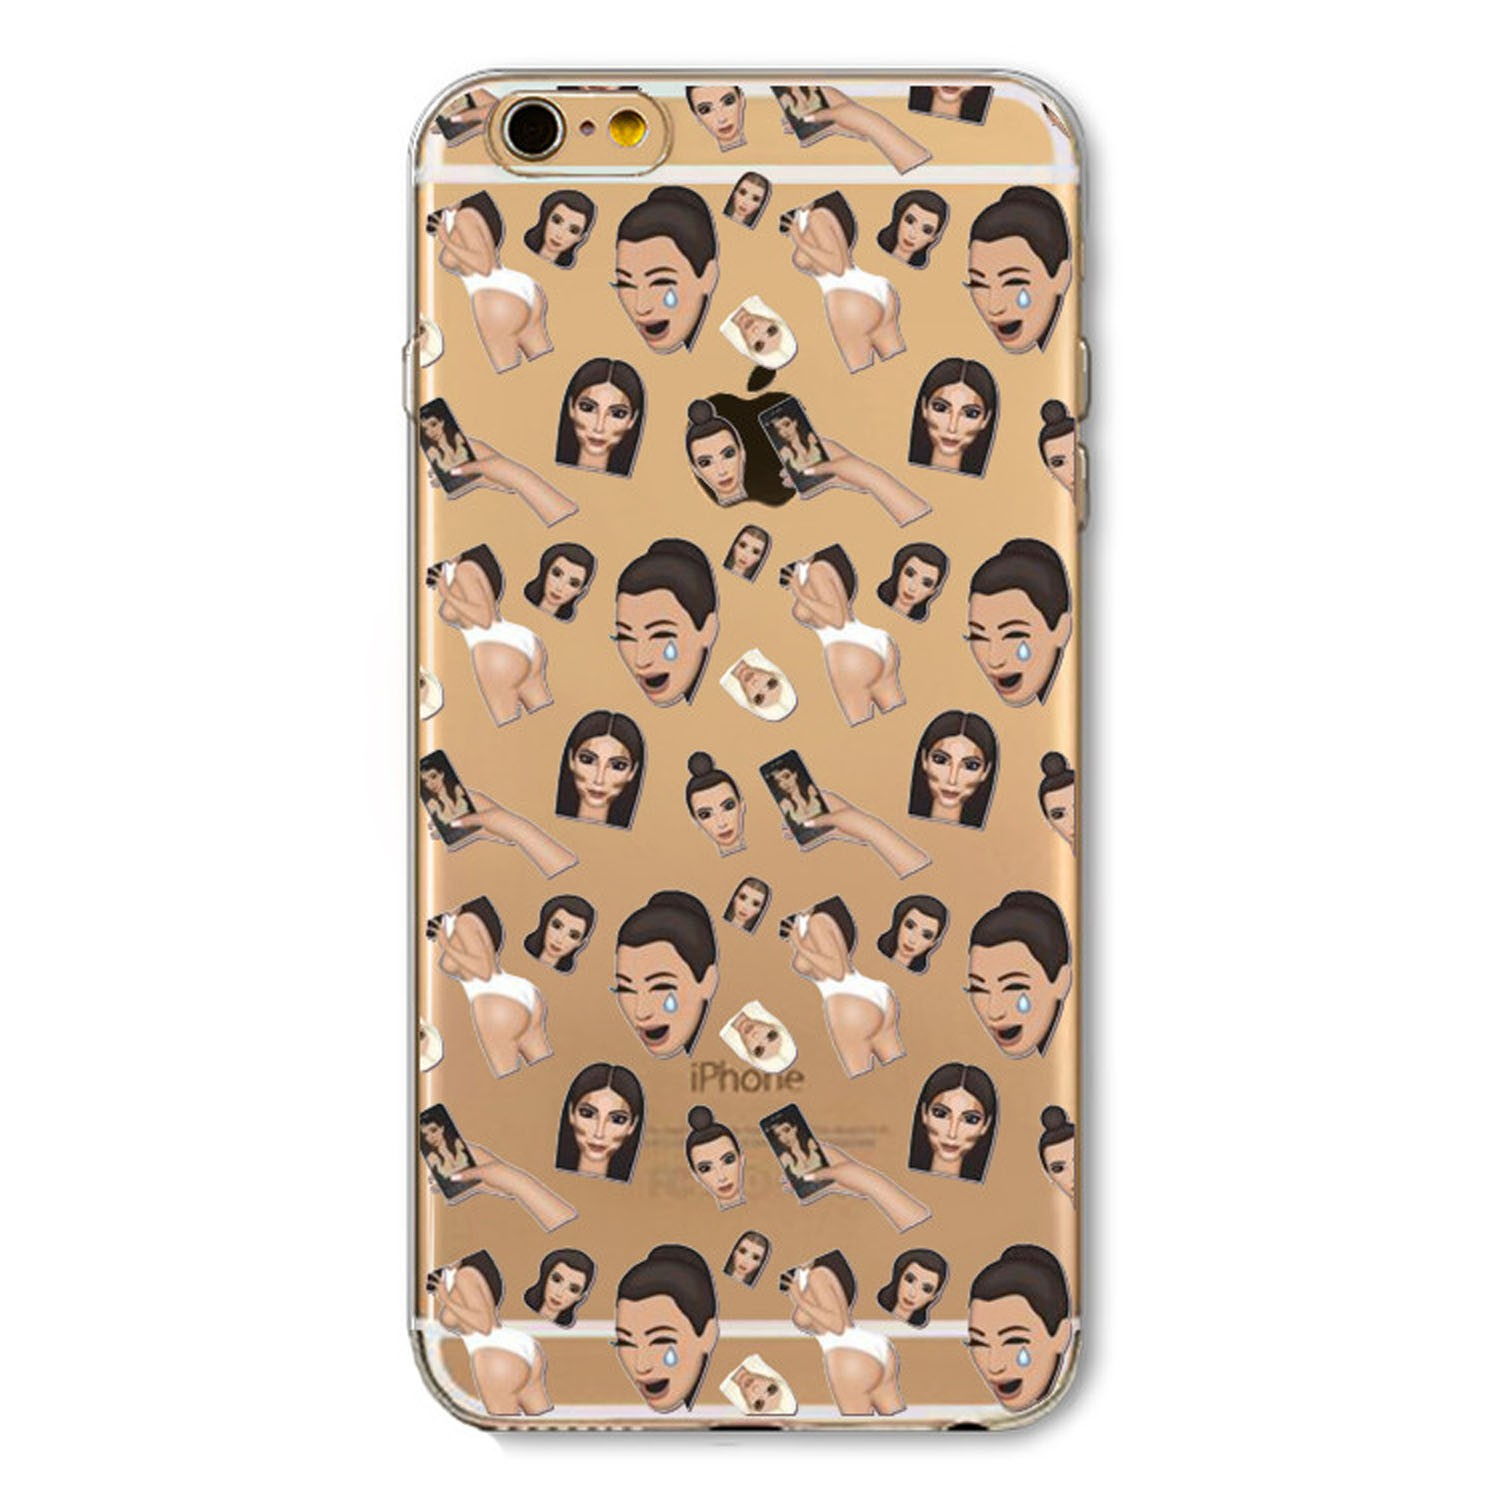 Kritzel Case Emoji Collection iPhone 6 Plus / 6s Plus - Kimoji 4